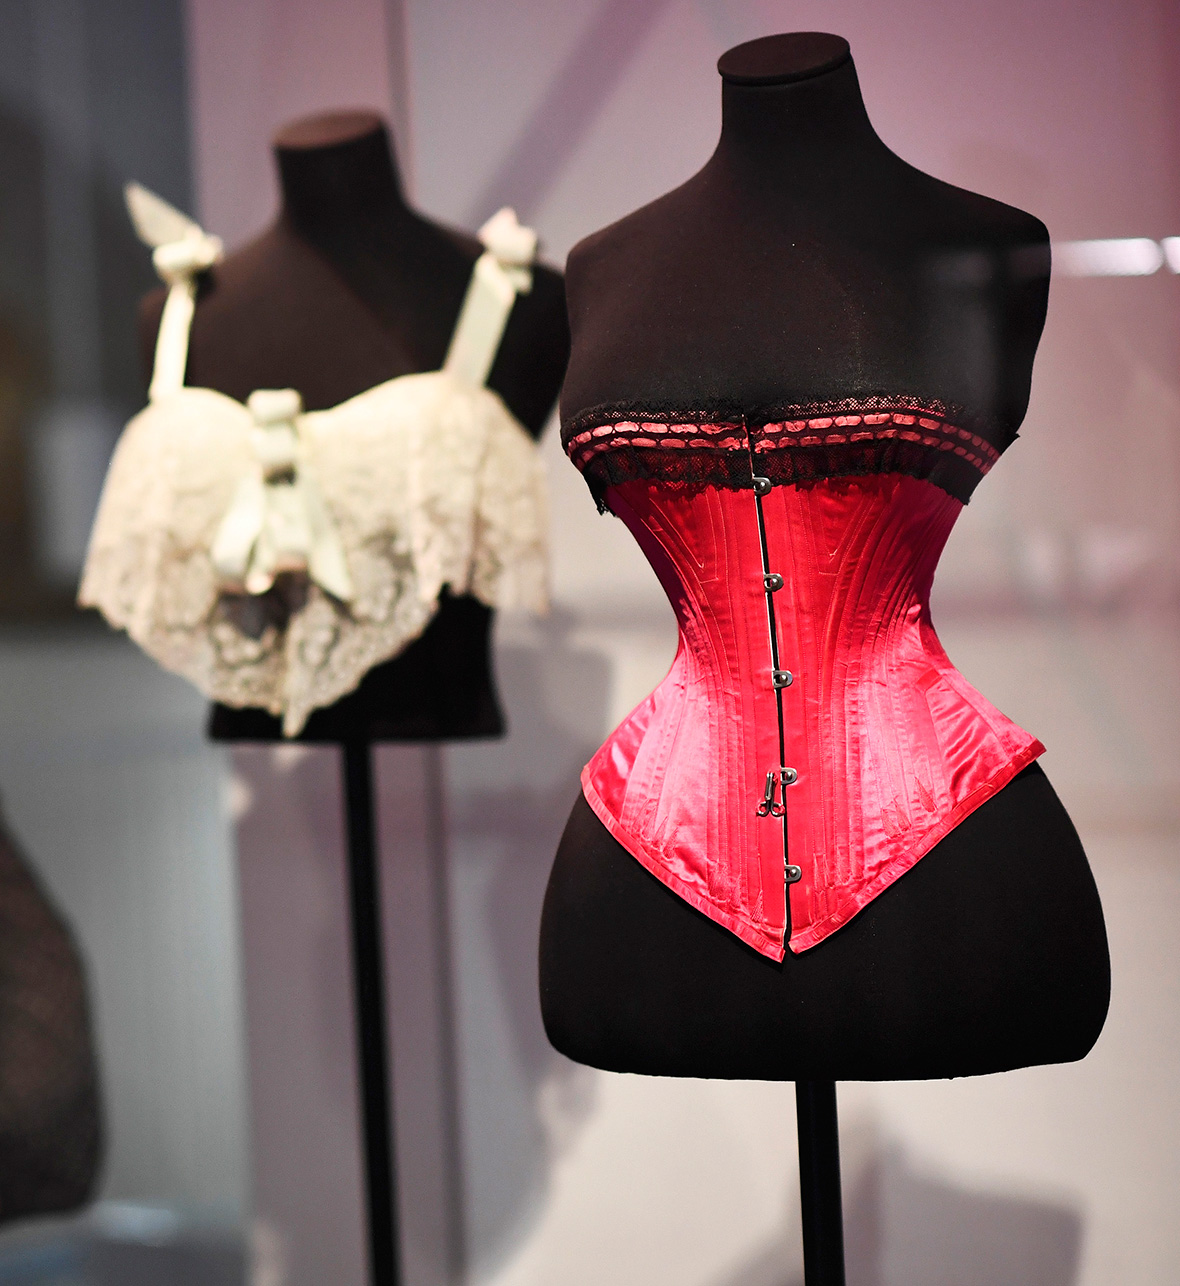 Undressed: A Brief History of Underwear